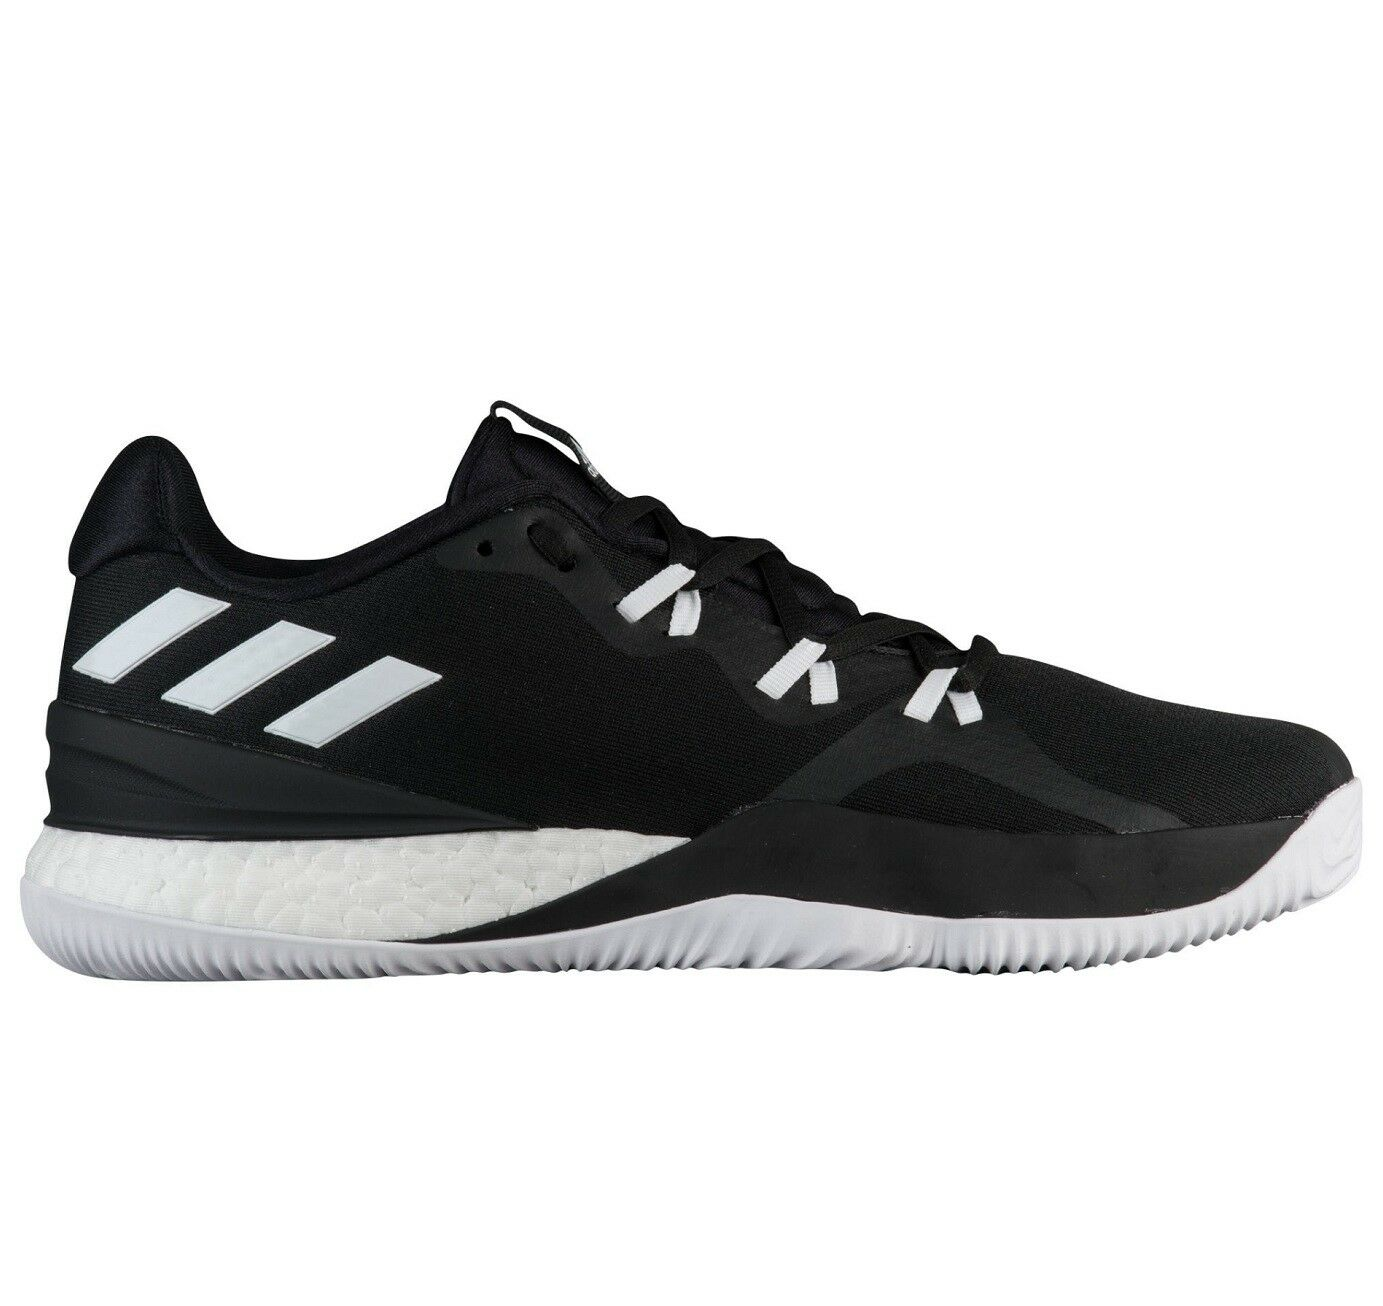 Adidas Crazy Light Boost 2018 Mens DB1070 Black White Basketball Shoes Comfortable